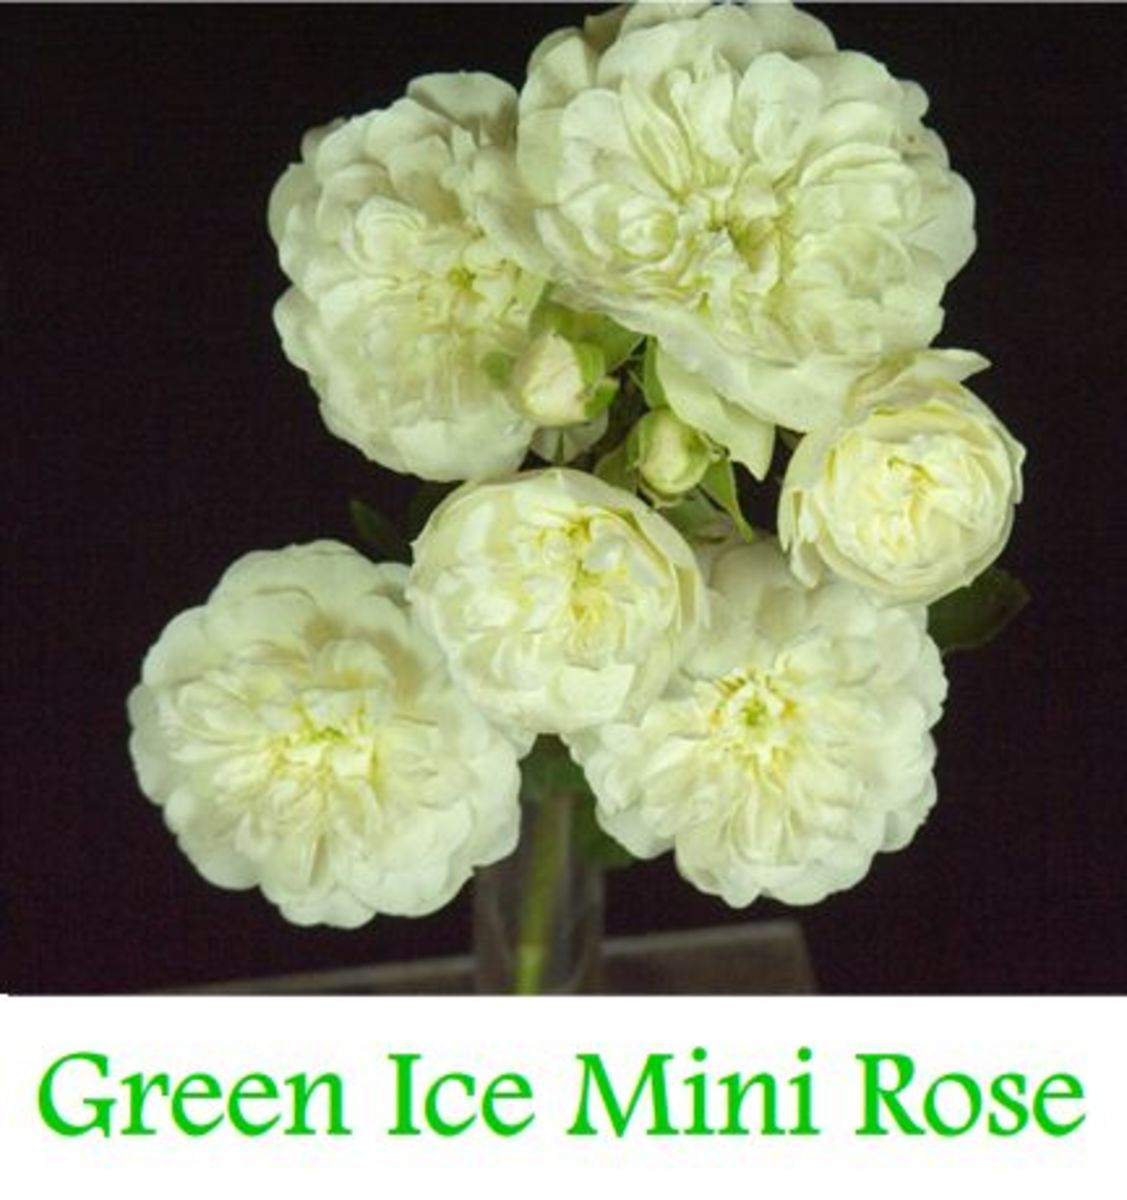 Green Ice Mini Rose